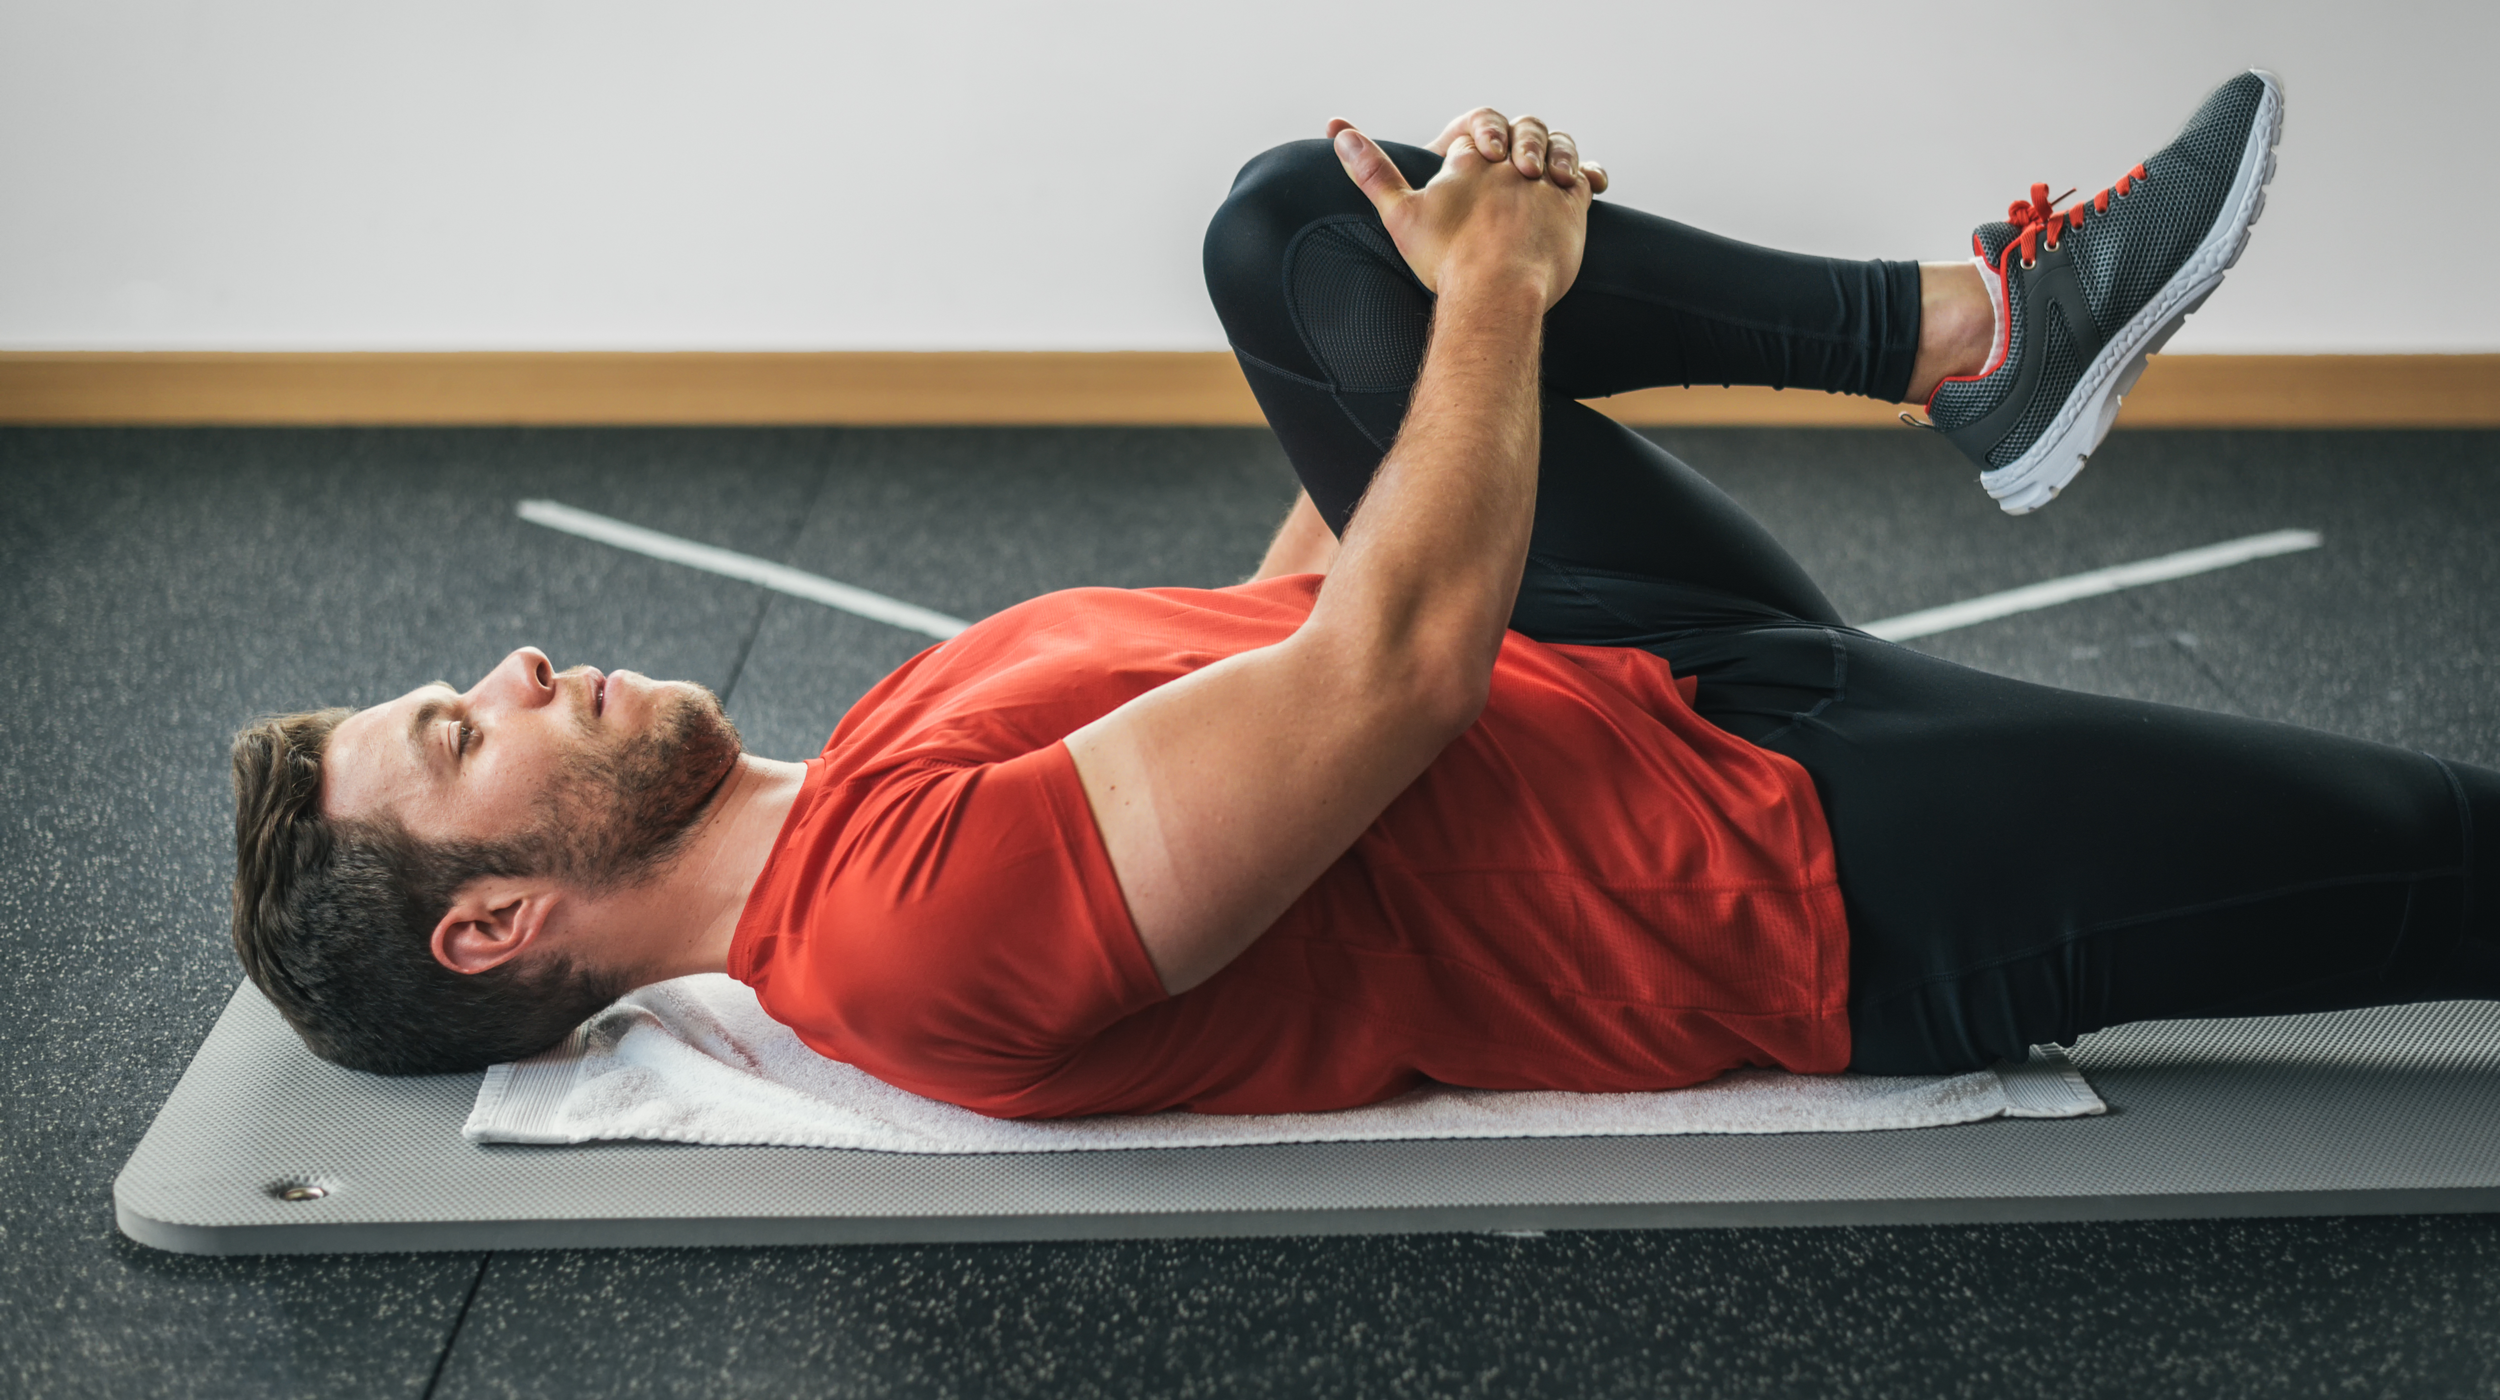 The Importance of Mobility Training in Regards to Chronic Pain